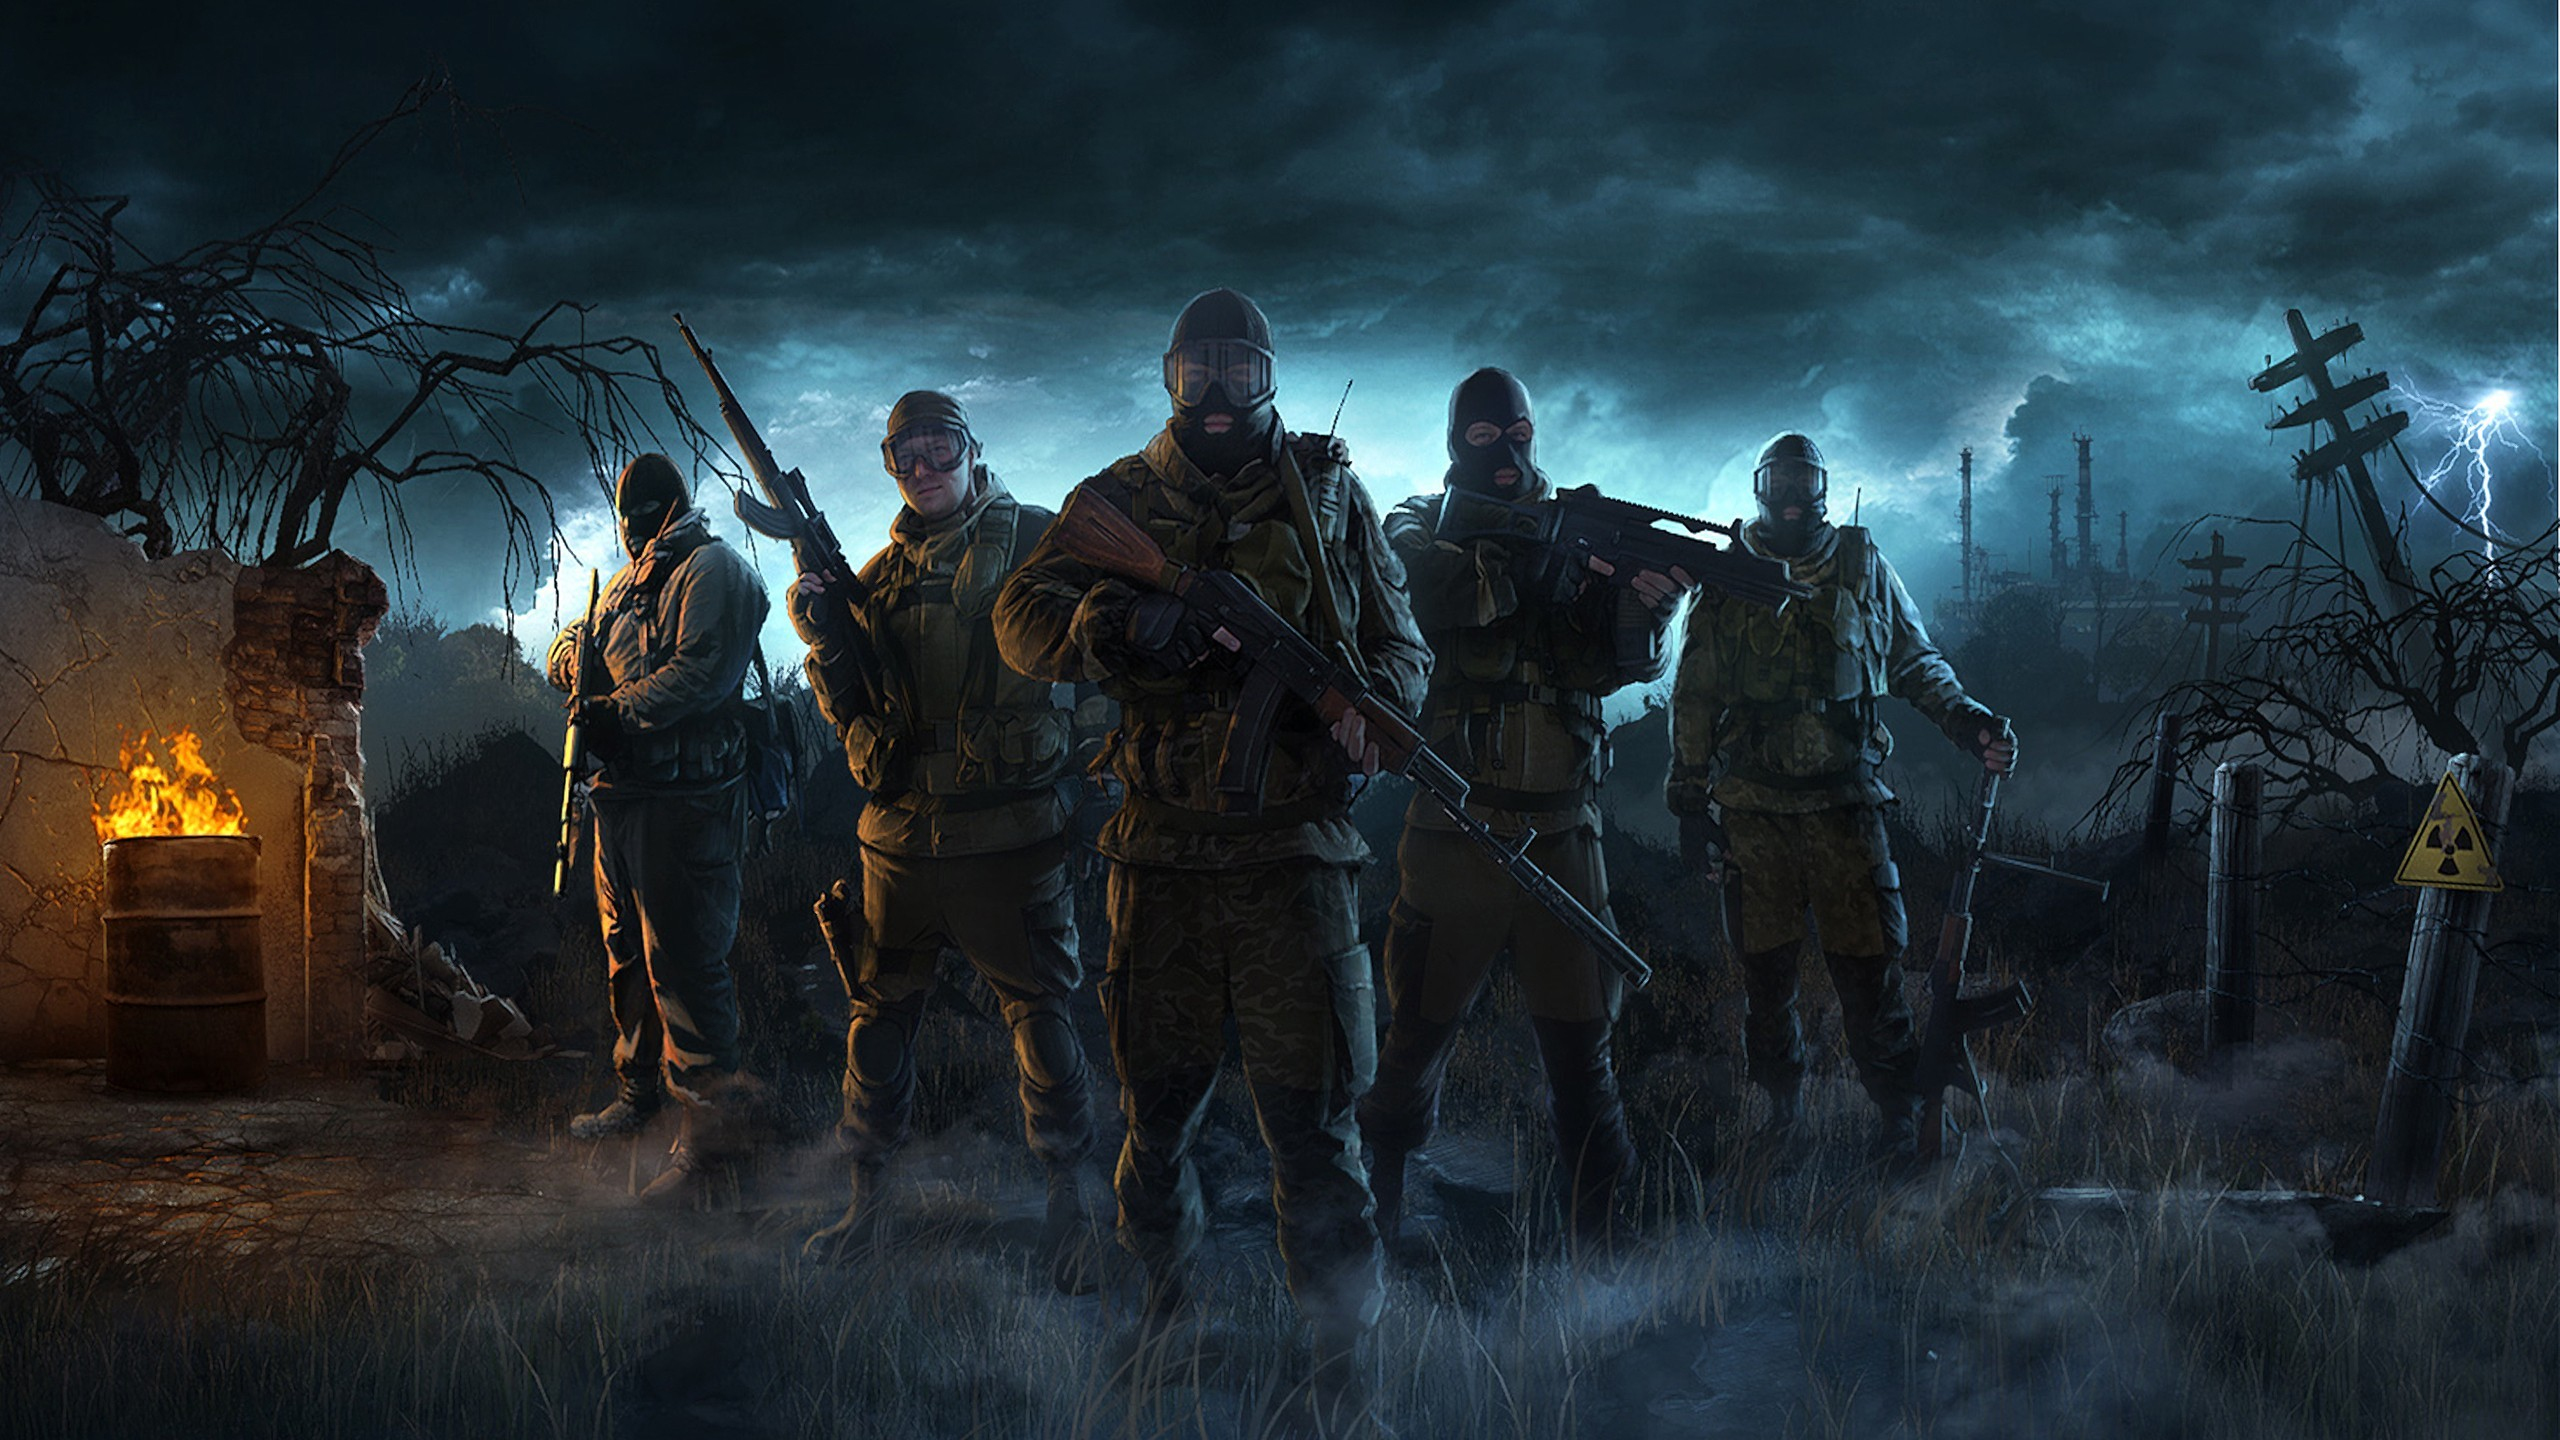 video games S.T.A.L.K.E.R. military HD Wallpaper